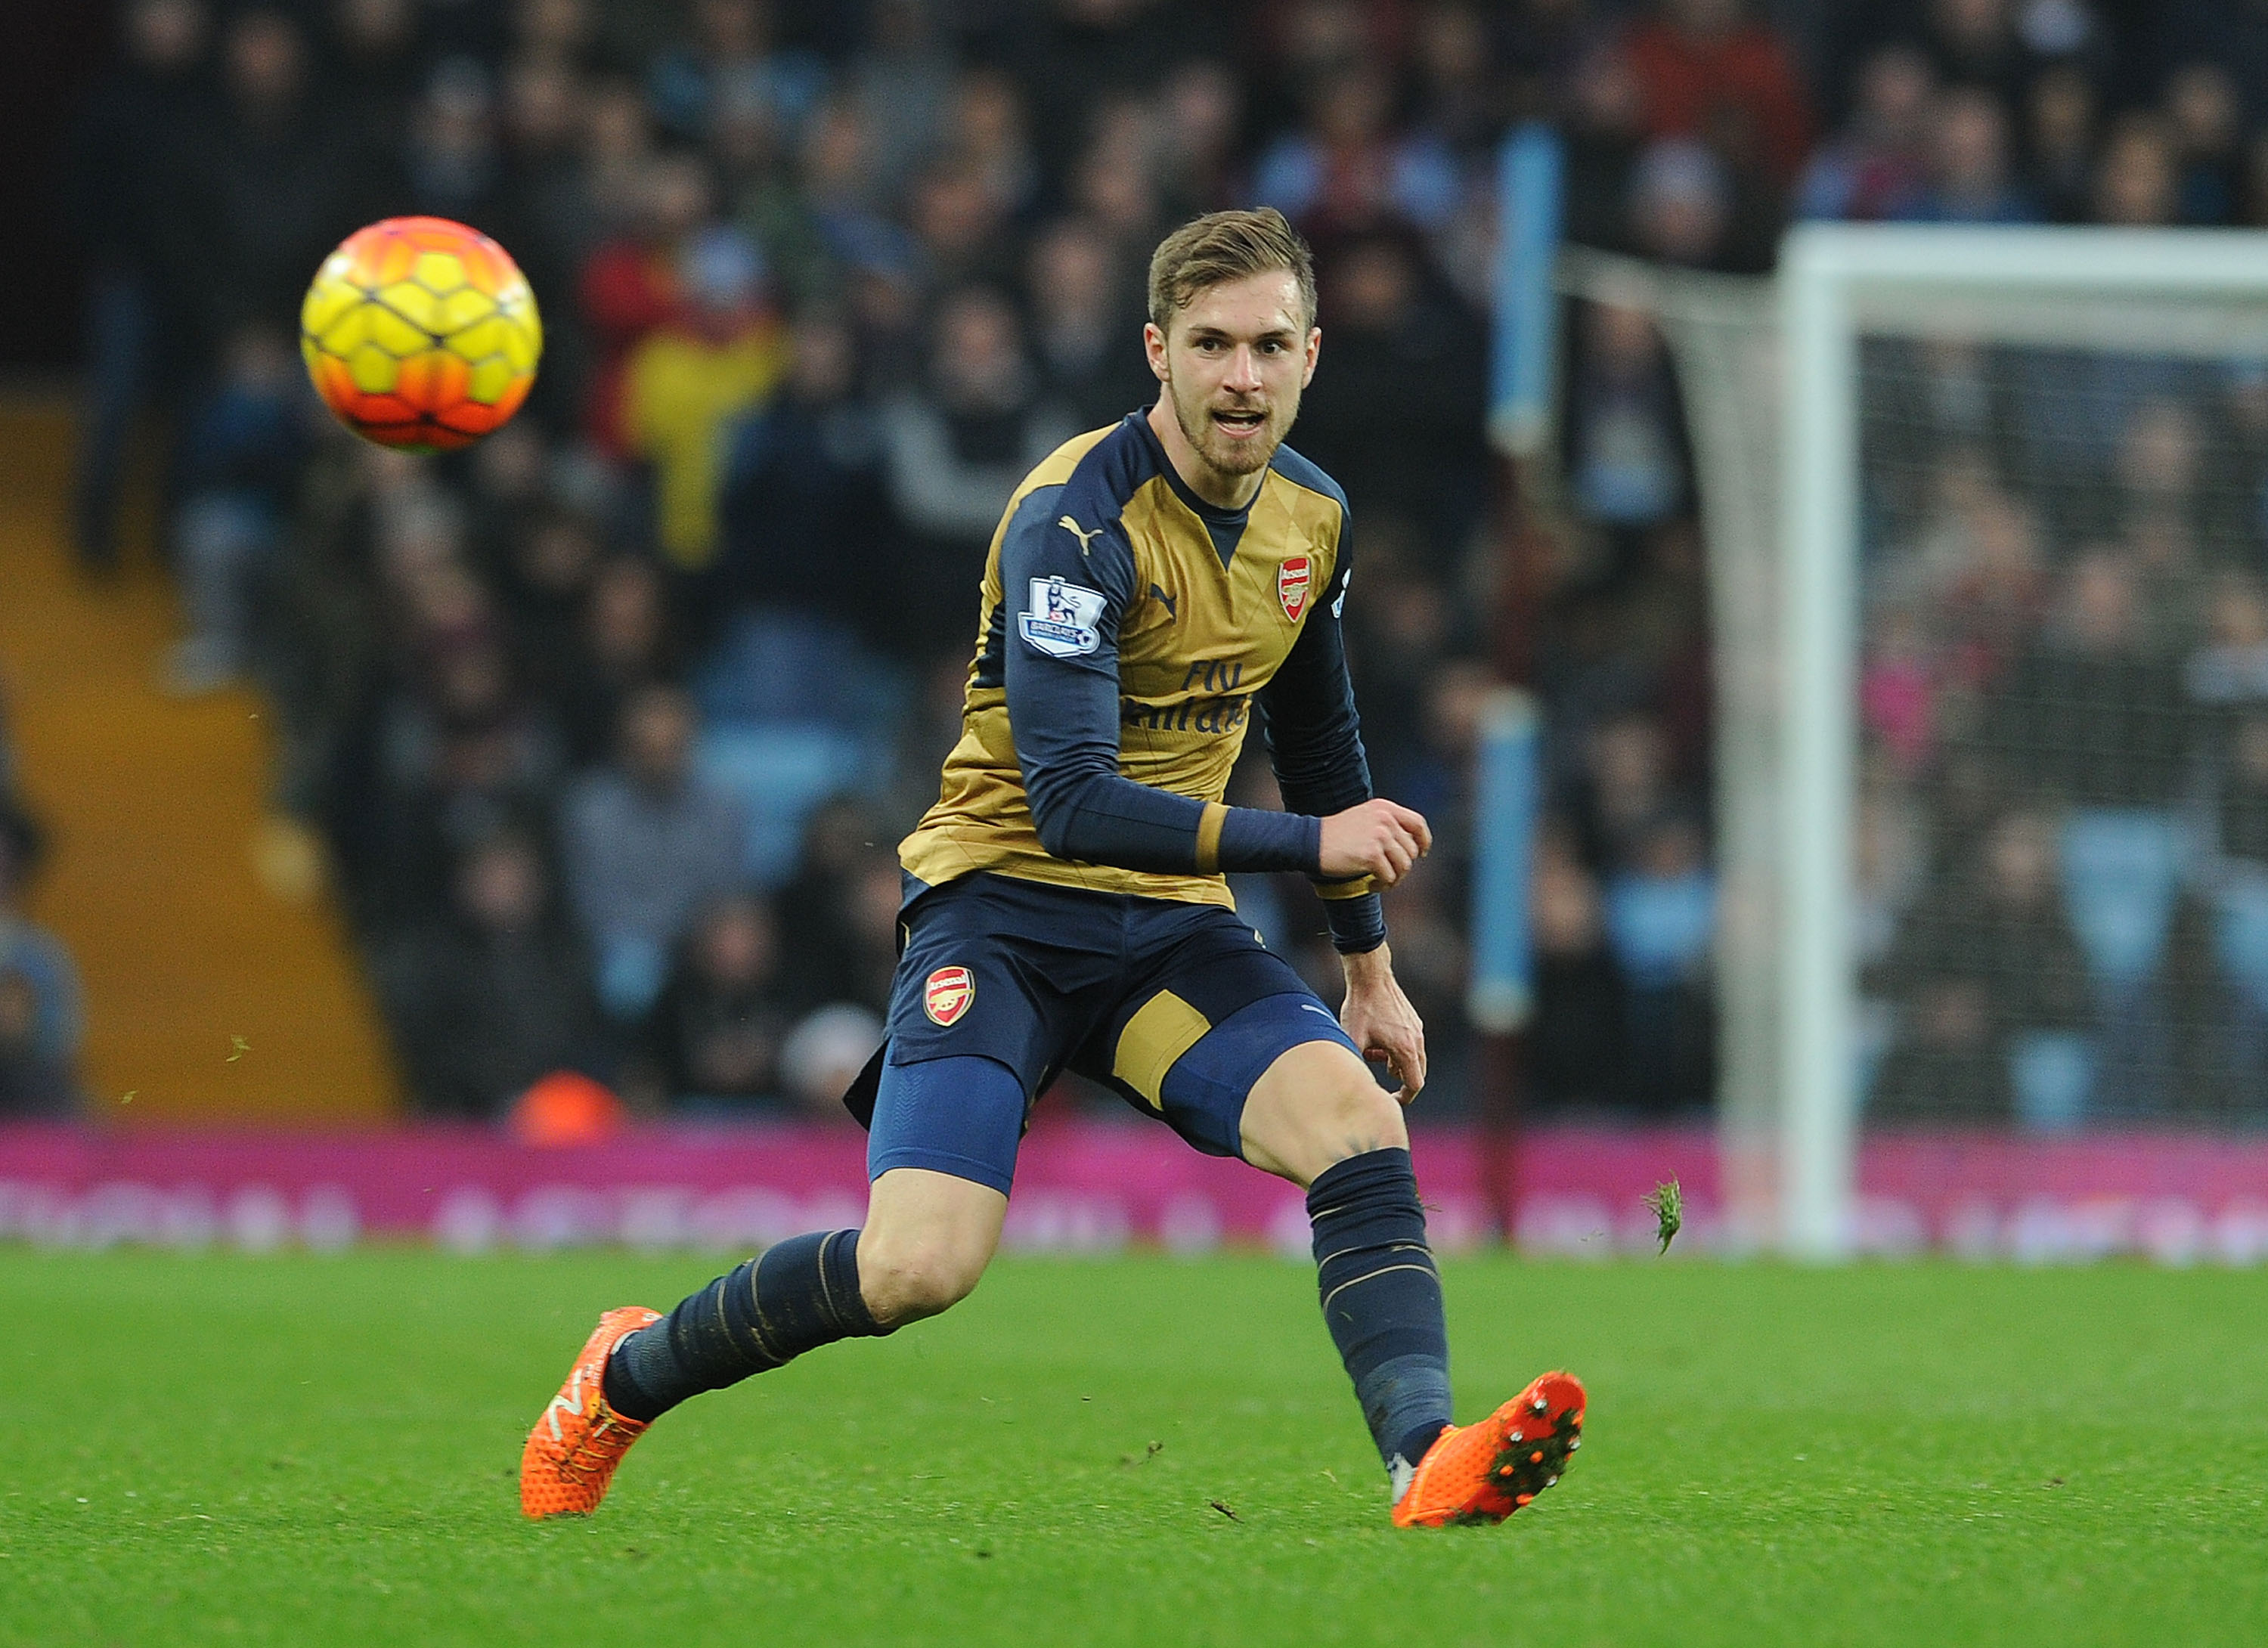 Arsenal's Aaron Ramsey can dominate Manchester City's Yaya Toure and prove he is the best midfielder in England